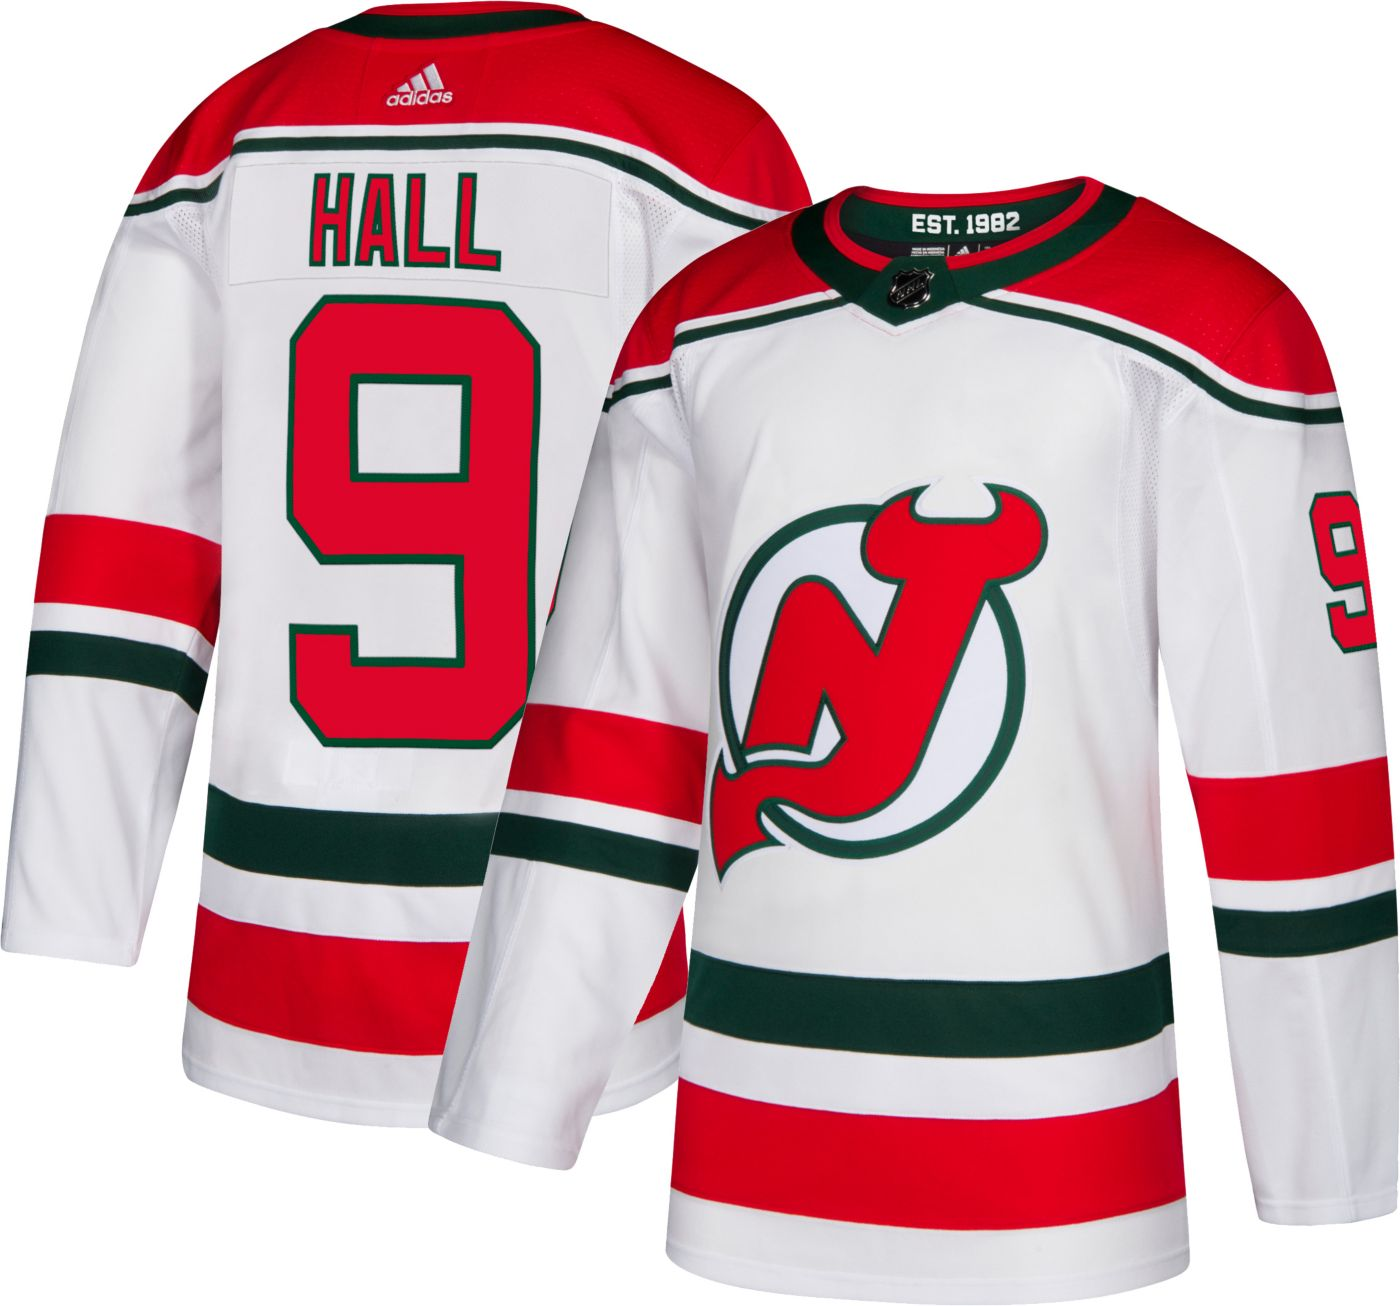 adidas Men's New Jersey Devils Taylor Hall #9 Authentic Pro Retro Jersey